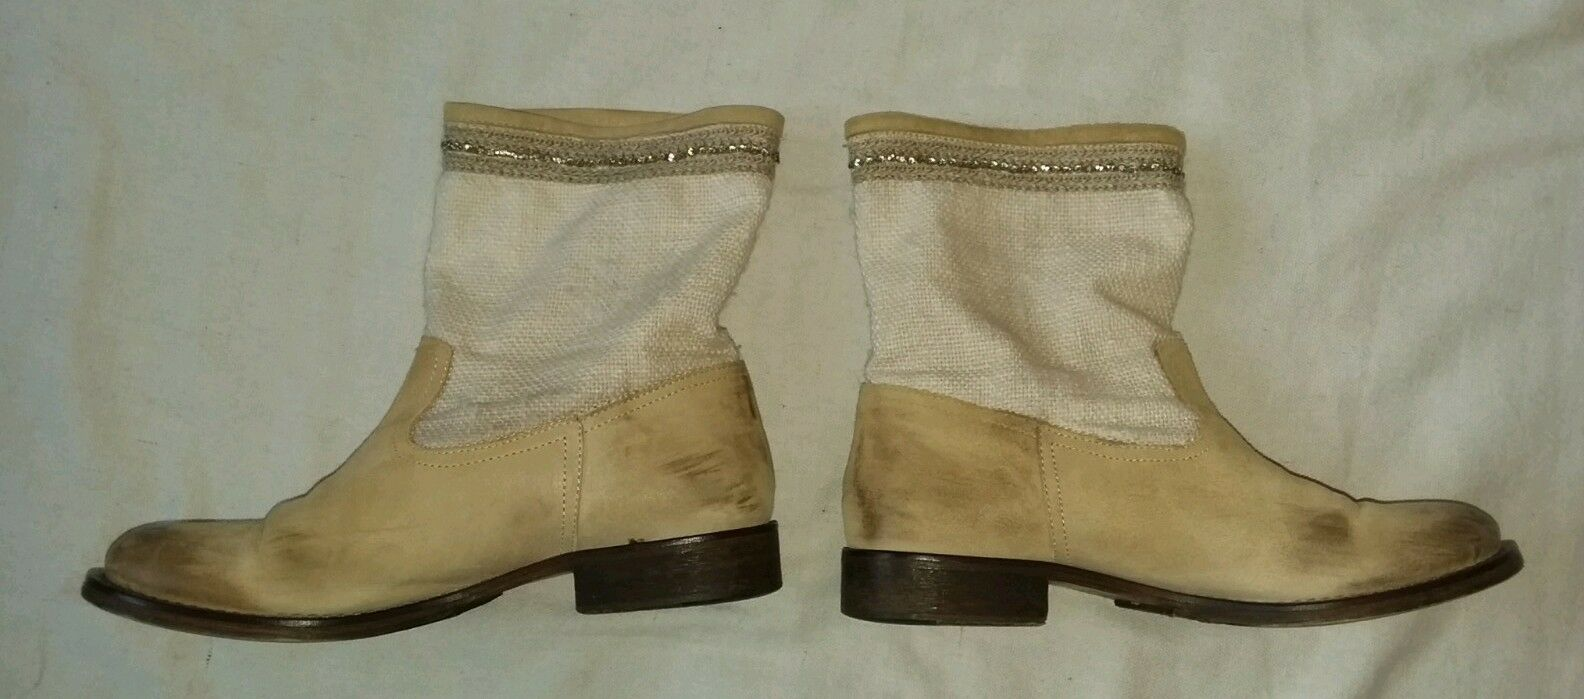 Womens Leather Boots Boots Boots Twin-set Tan Booties Woven Upper Rhinestones Low Heel 39 8 65c2a3